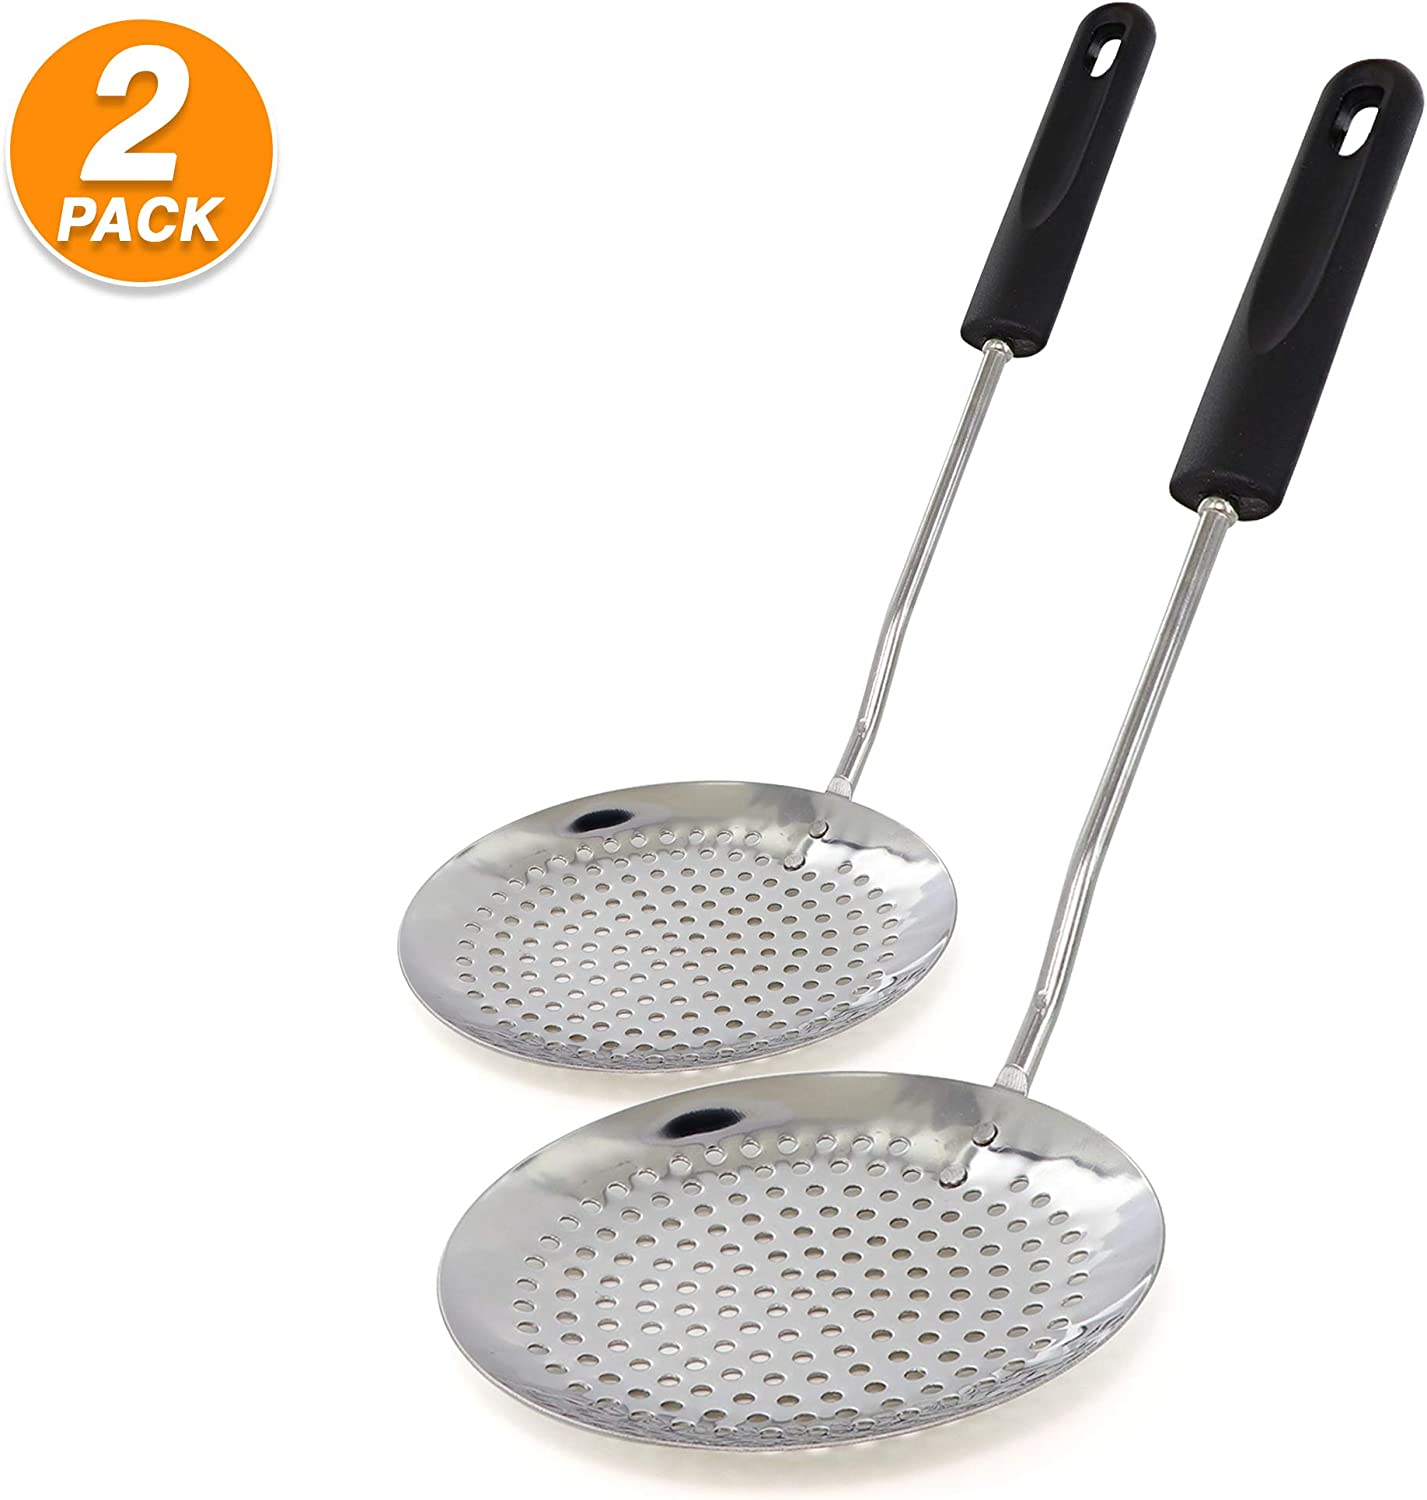 Ram Pro Stainless Steel Skimmer Kitchen Cooking Utensil Features Plastic Handle with Hole Ideal for Skimming Liquids (Pack Of 2)